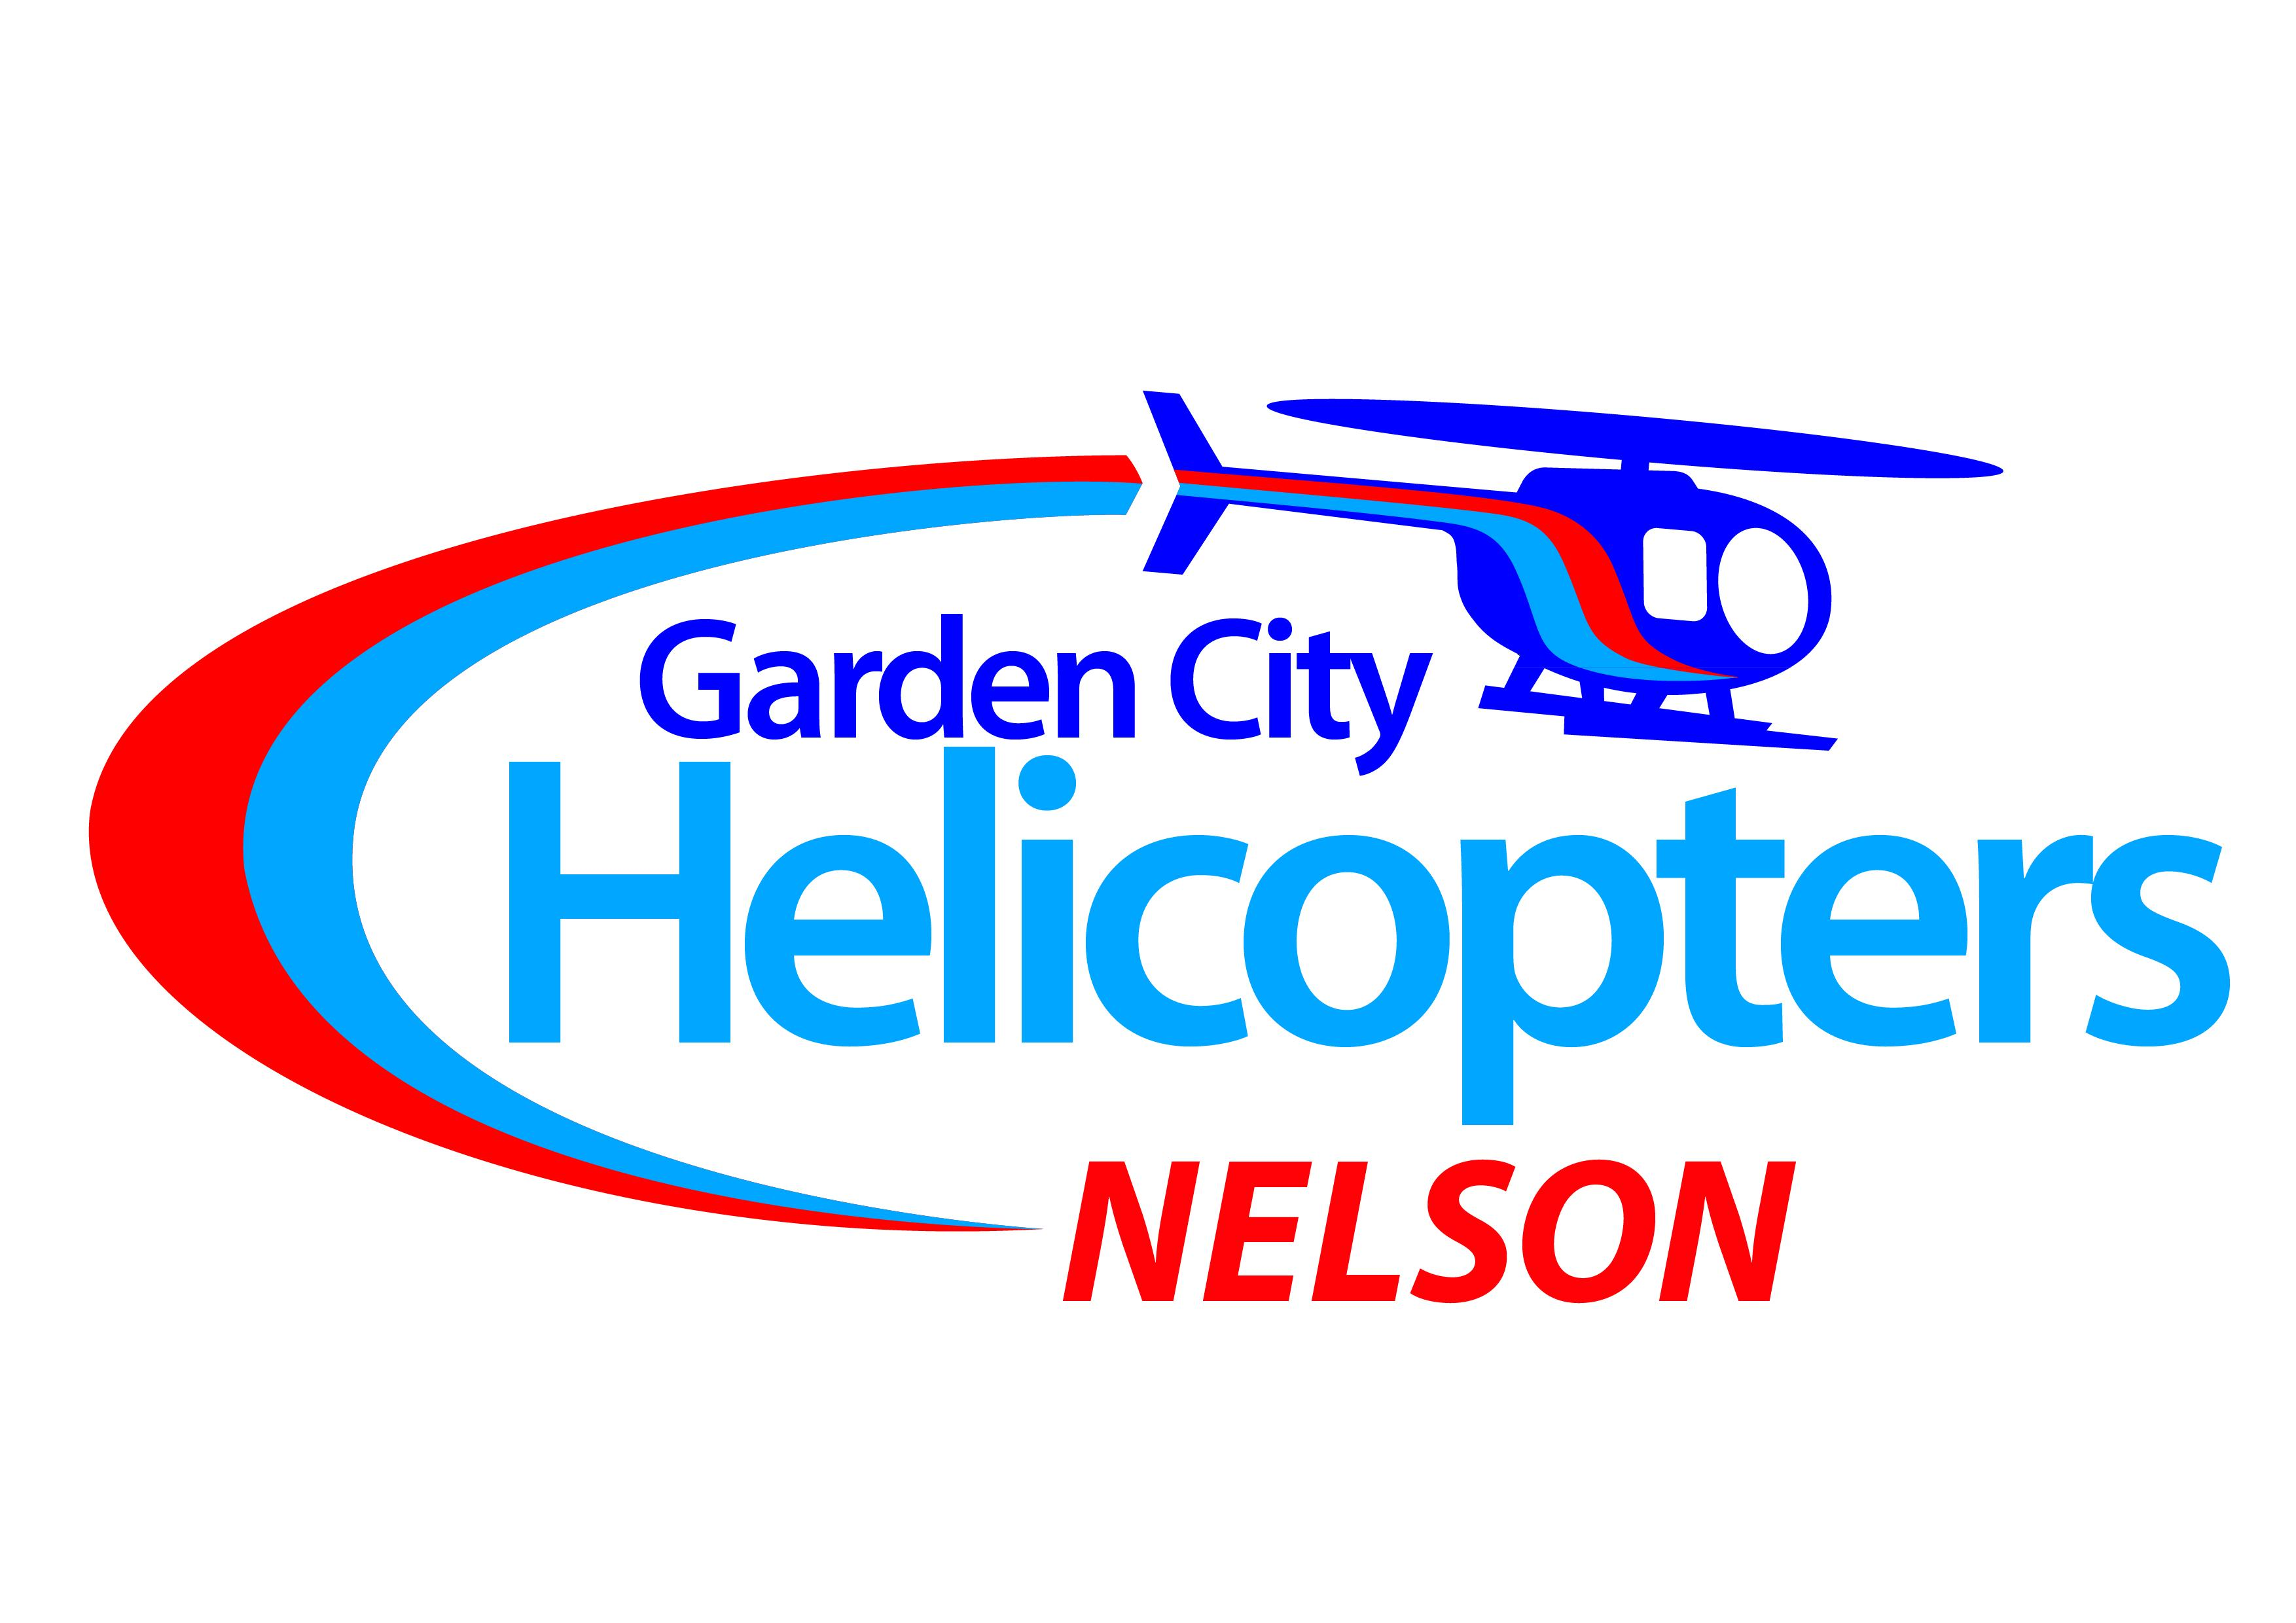 Garden City Helicopters - Nelson